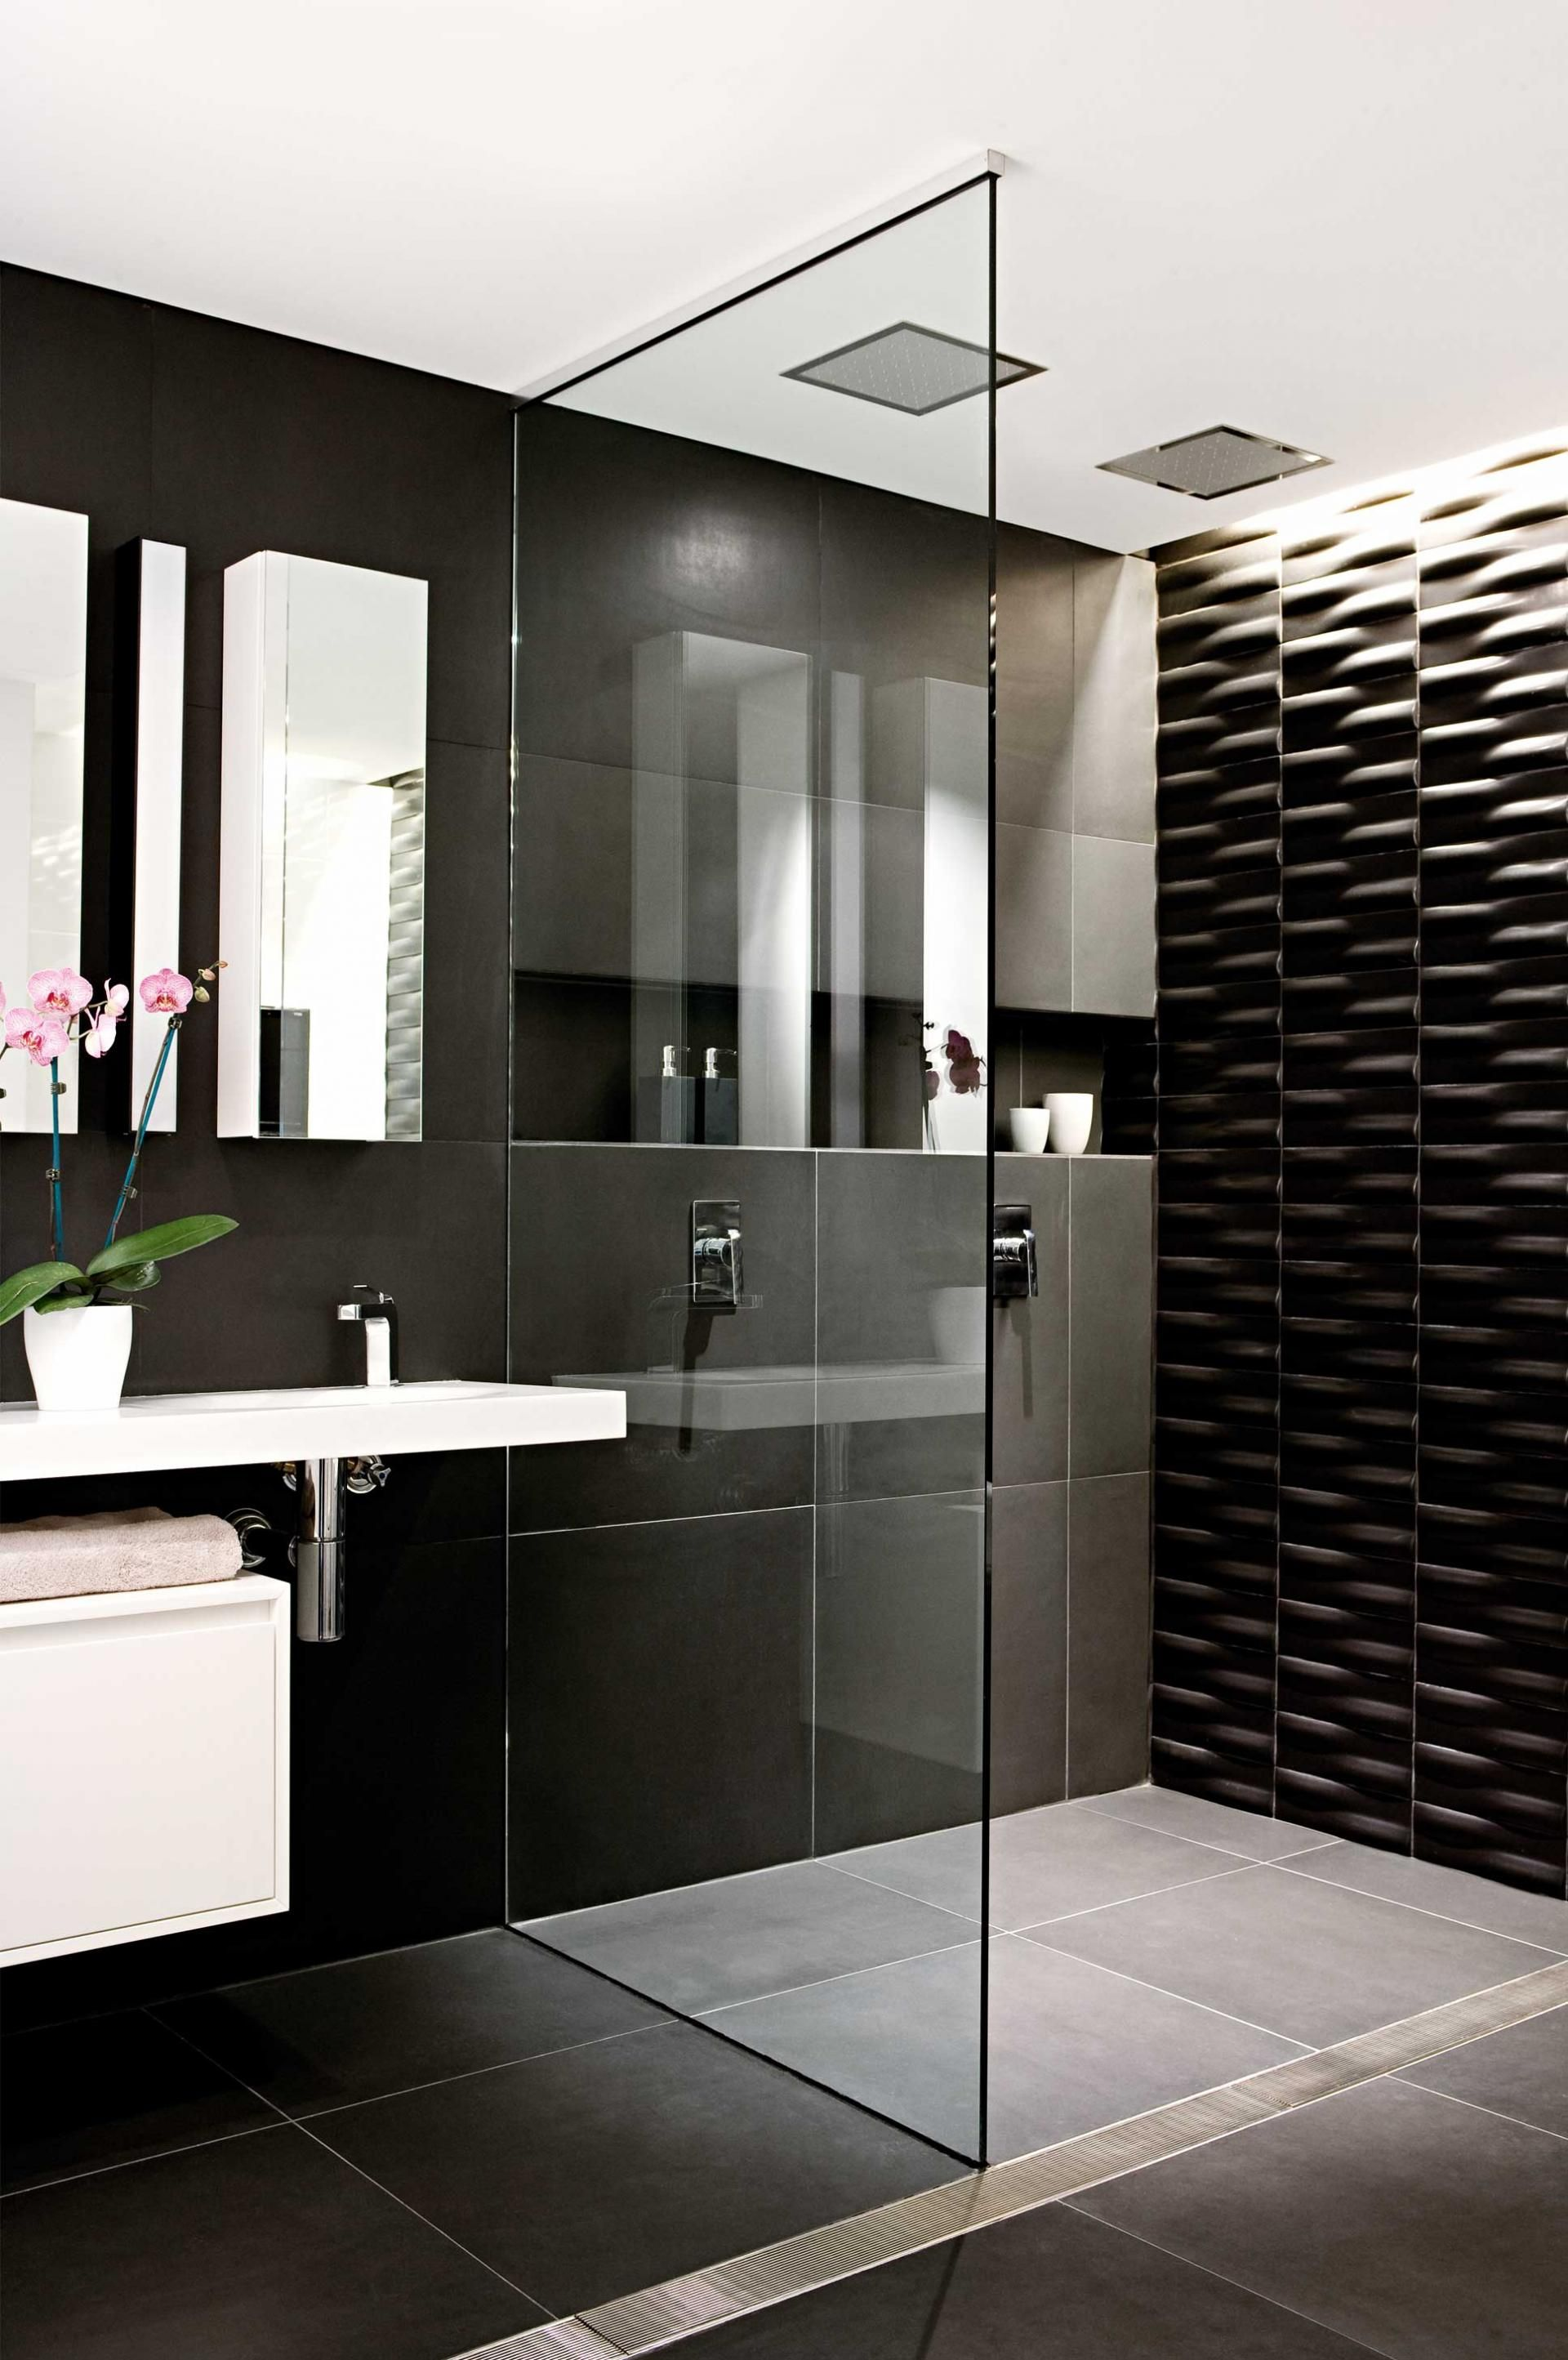 Etonnant 10 Black And White Bathrooms. Styling By Vanessa Colyer Tay. Photography By  Sam McAdam